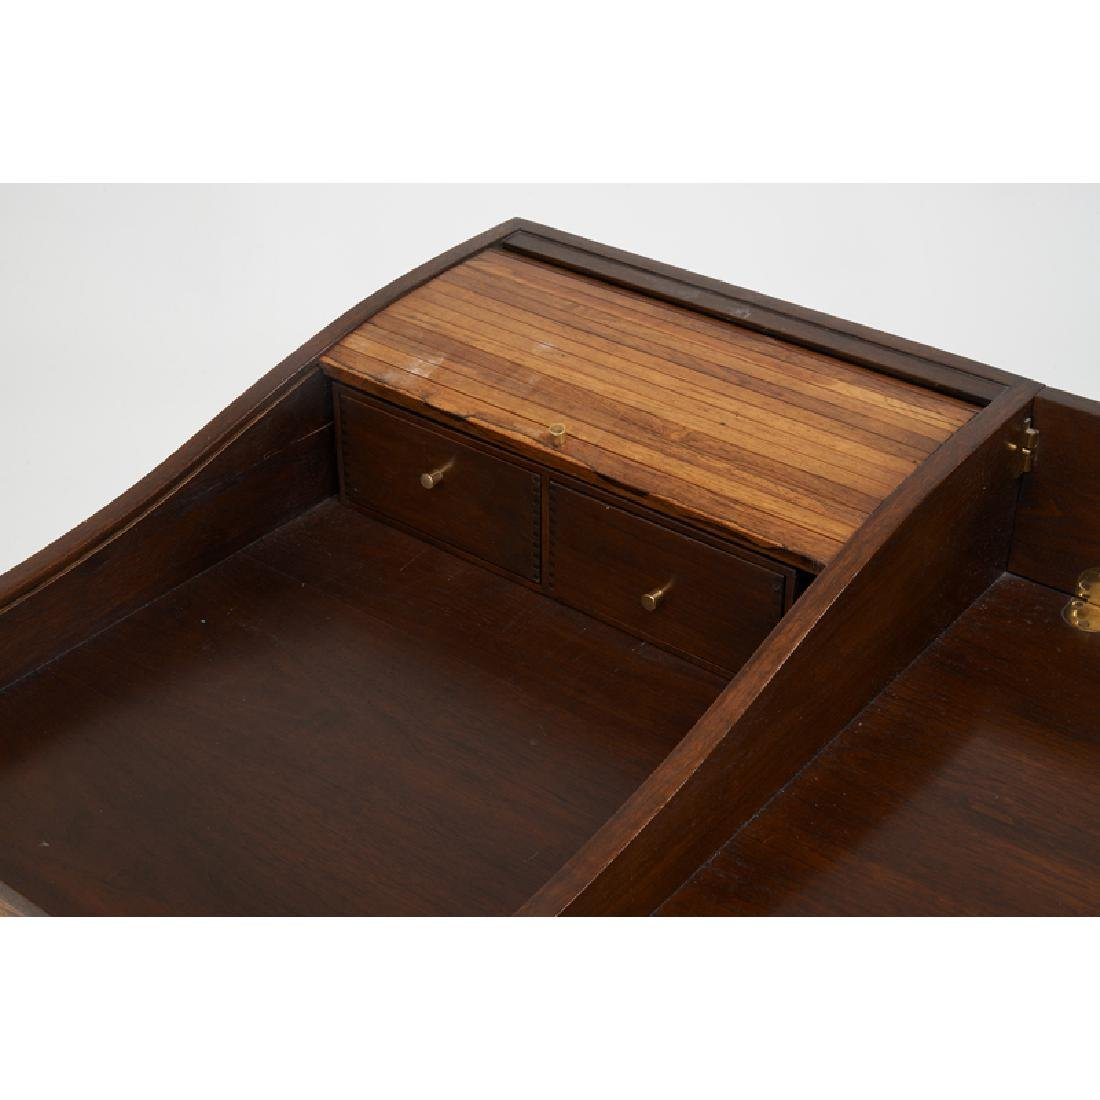 EDWARD WORMLEY Tambour desk - 6